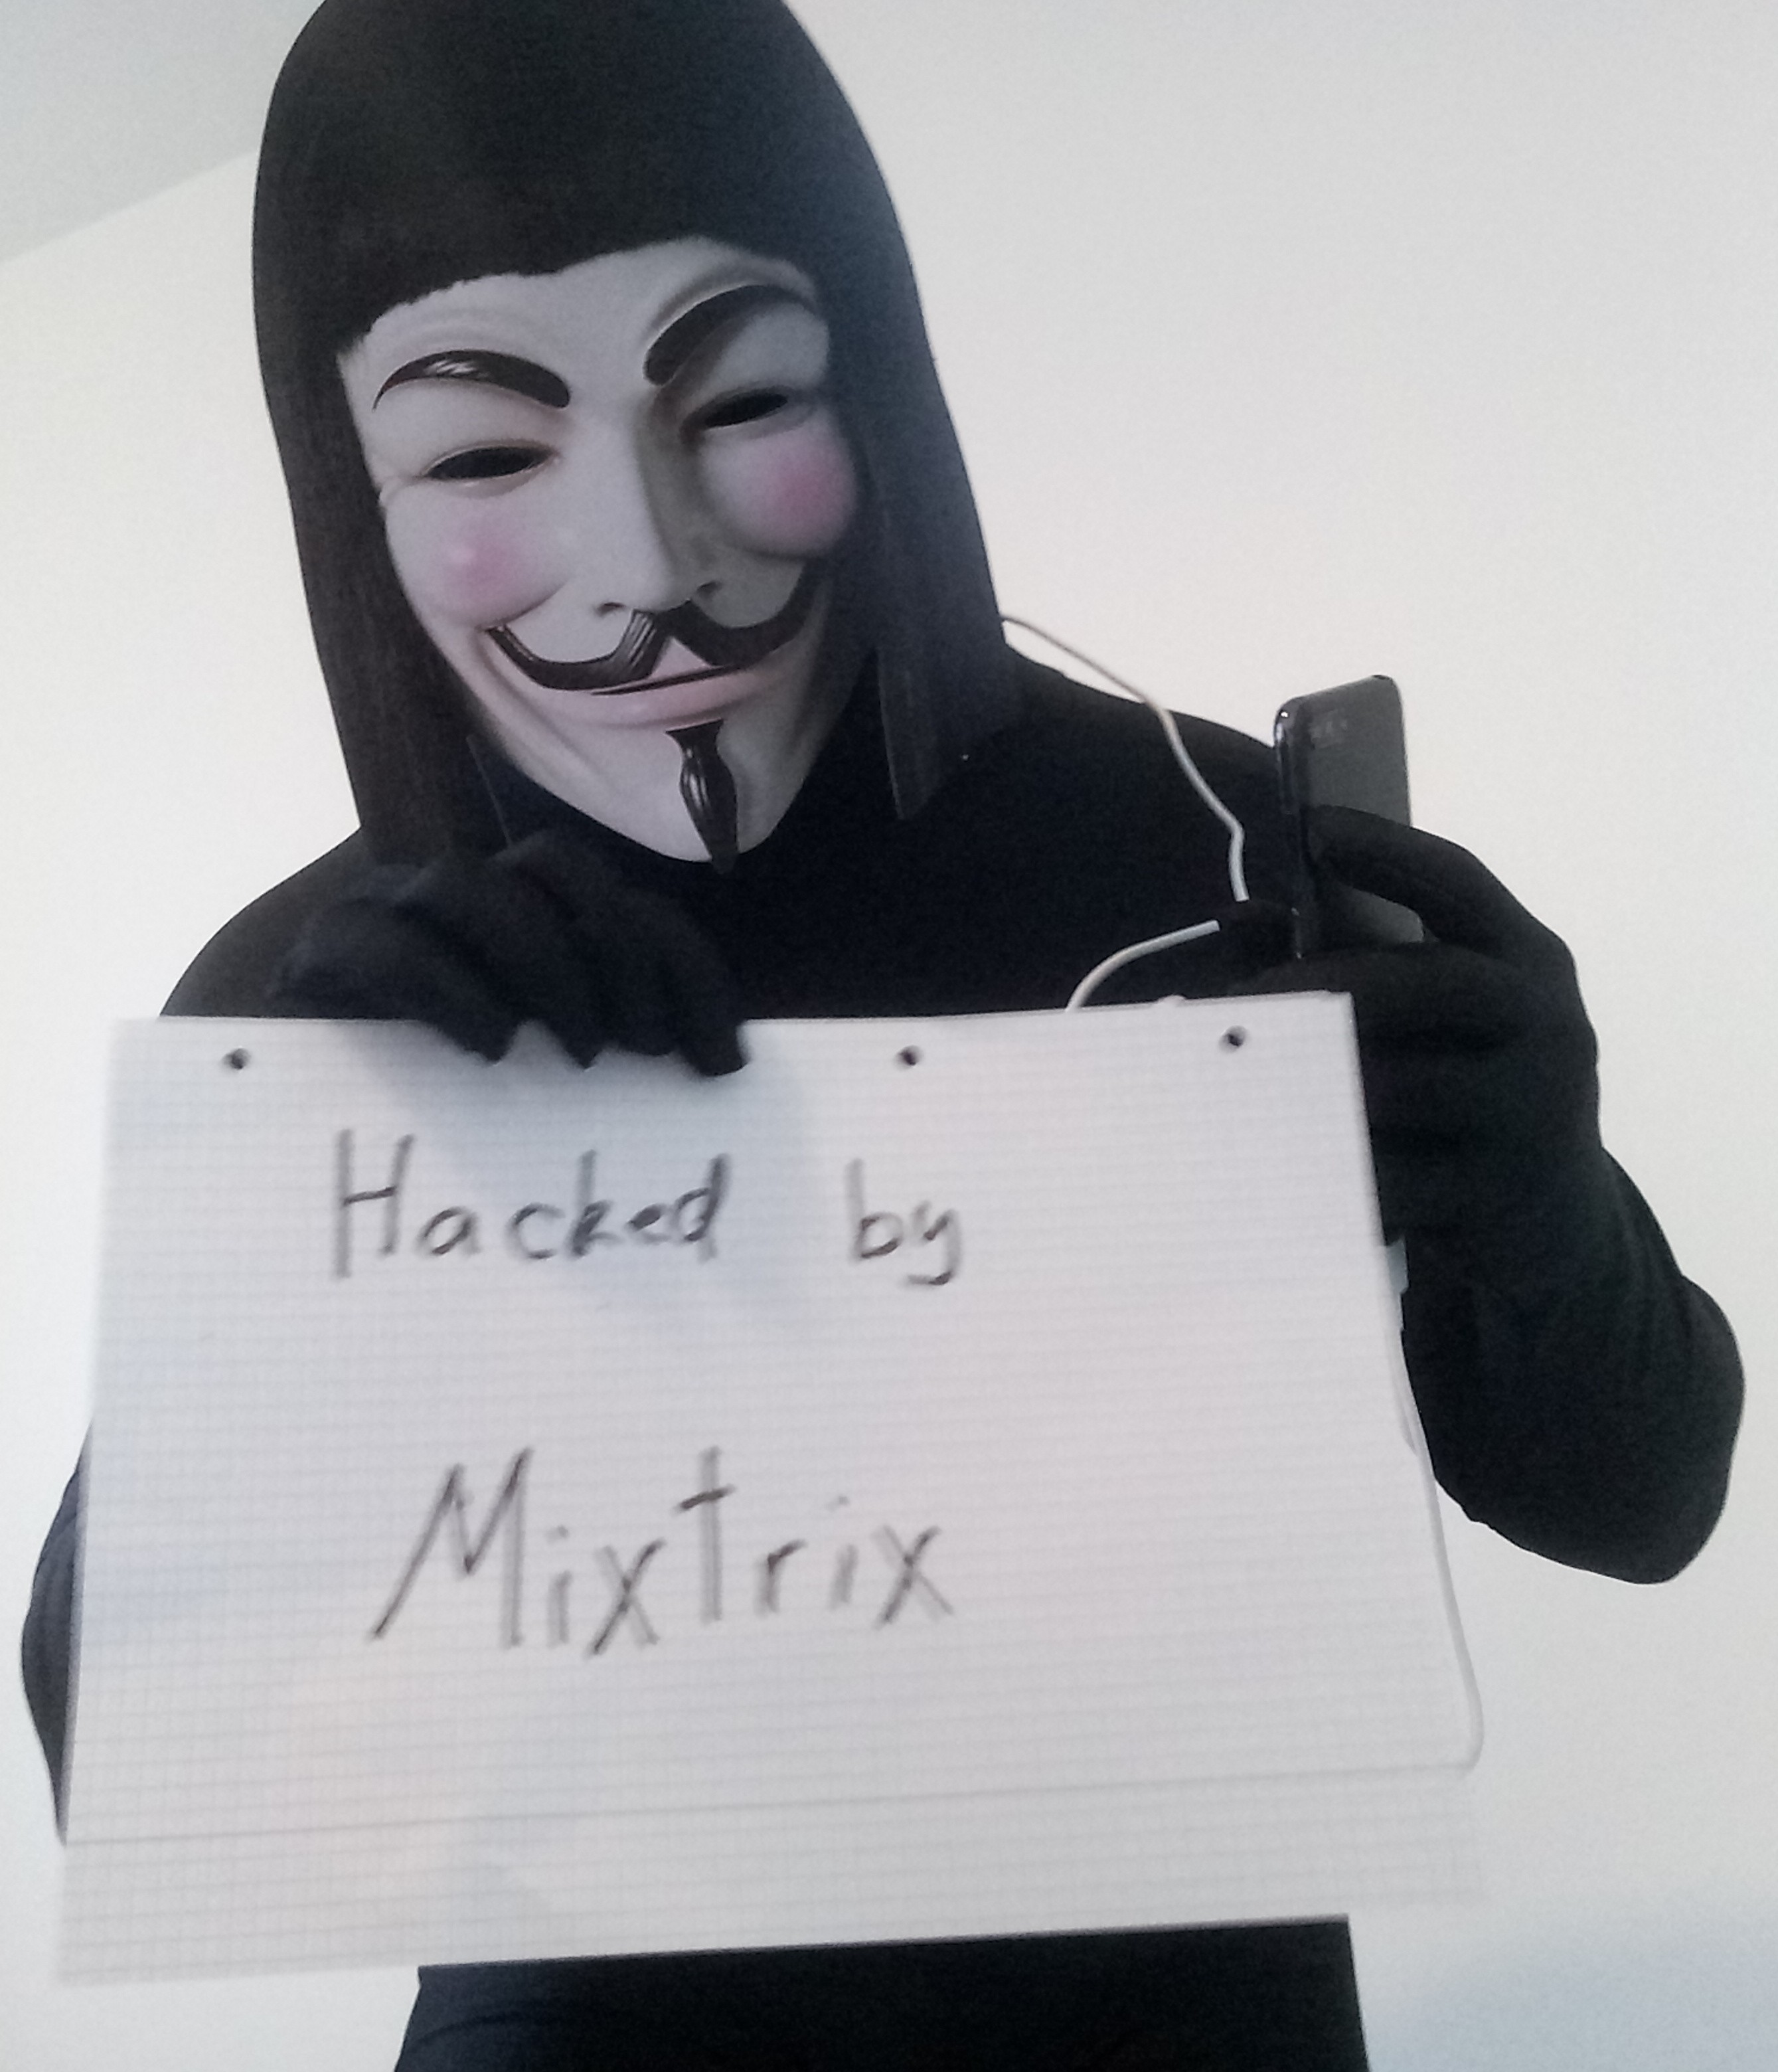 hacked by MIXTRIX